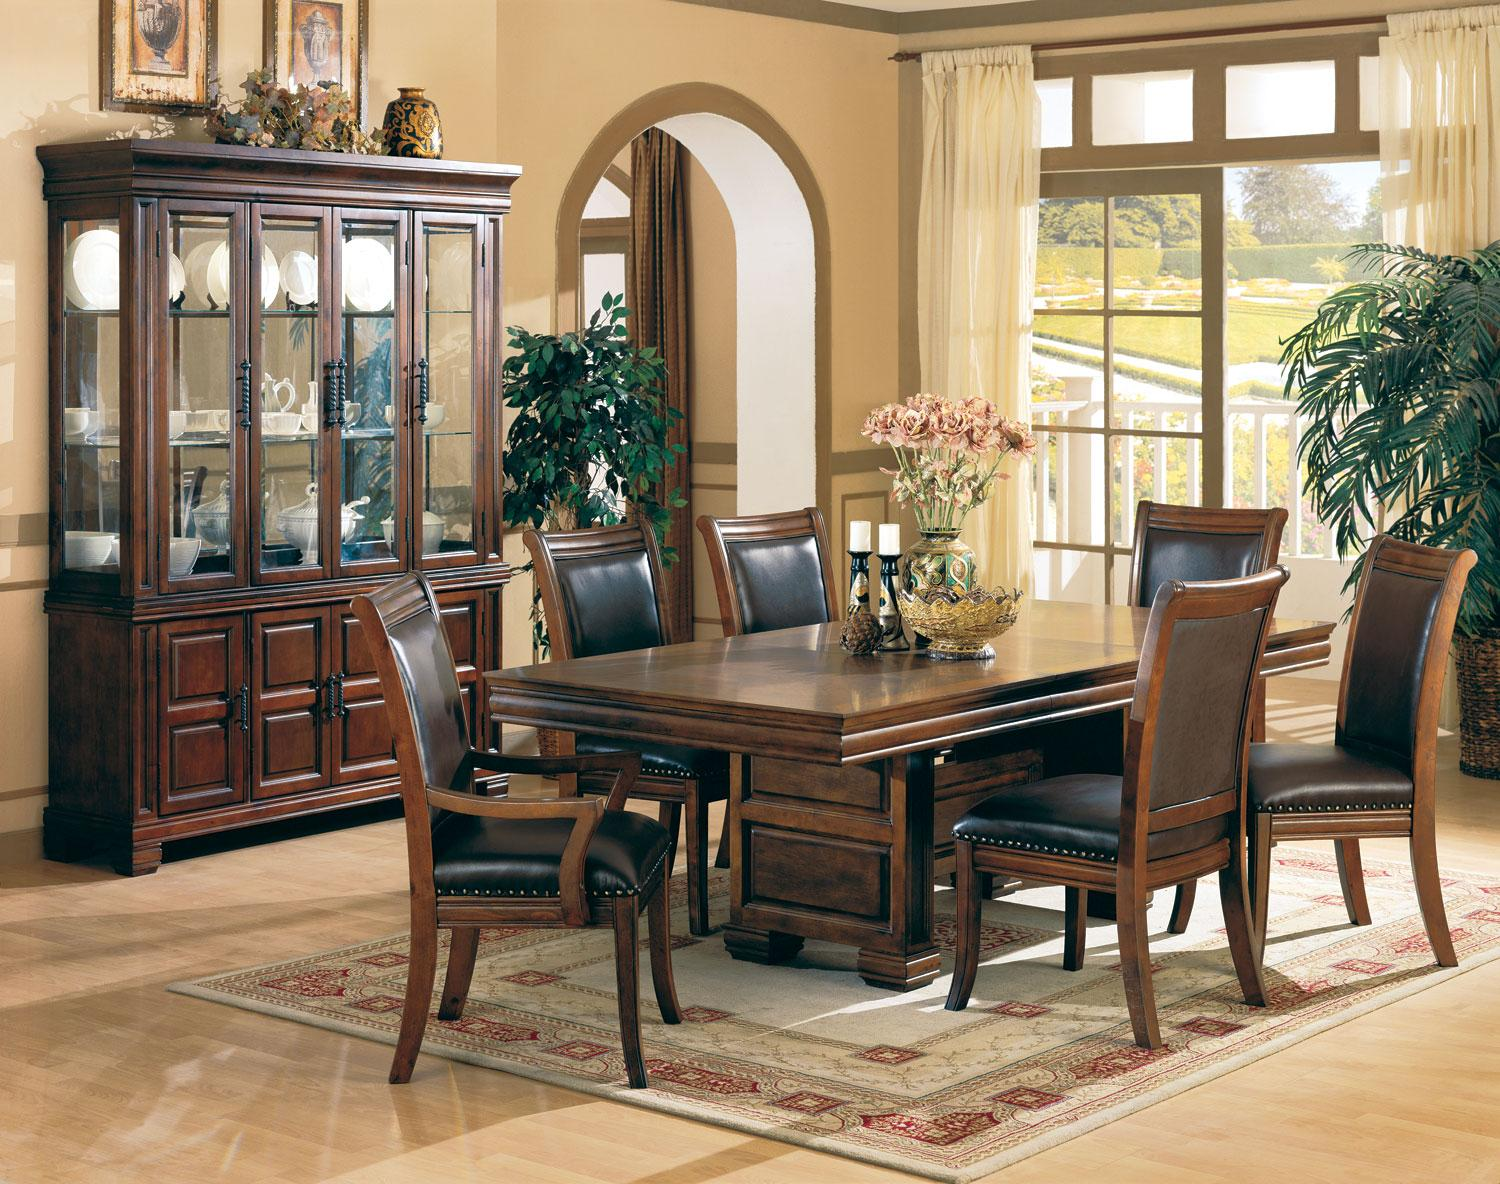 Westminster 7 Pc Dining Set 3635 by Coaster